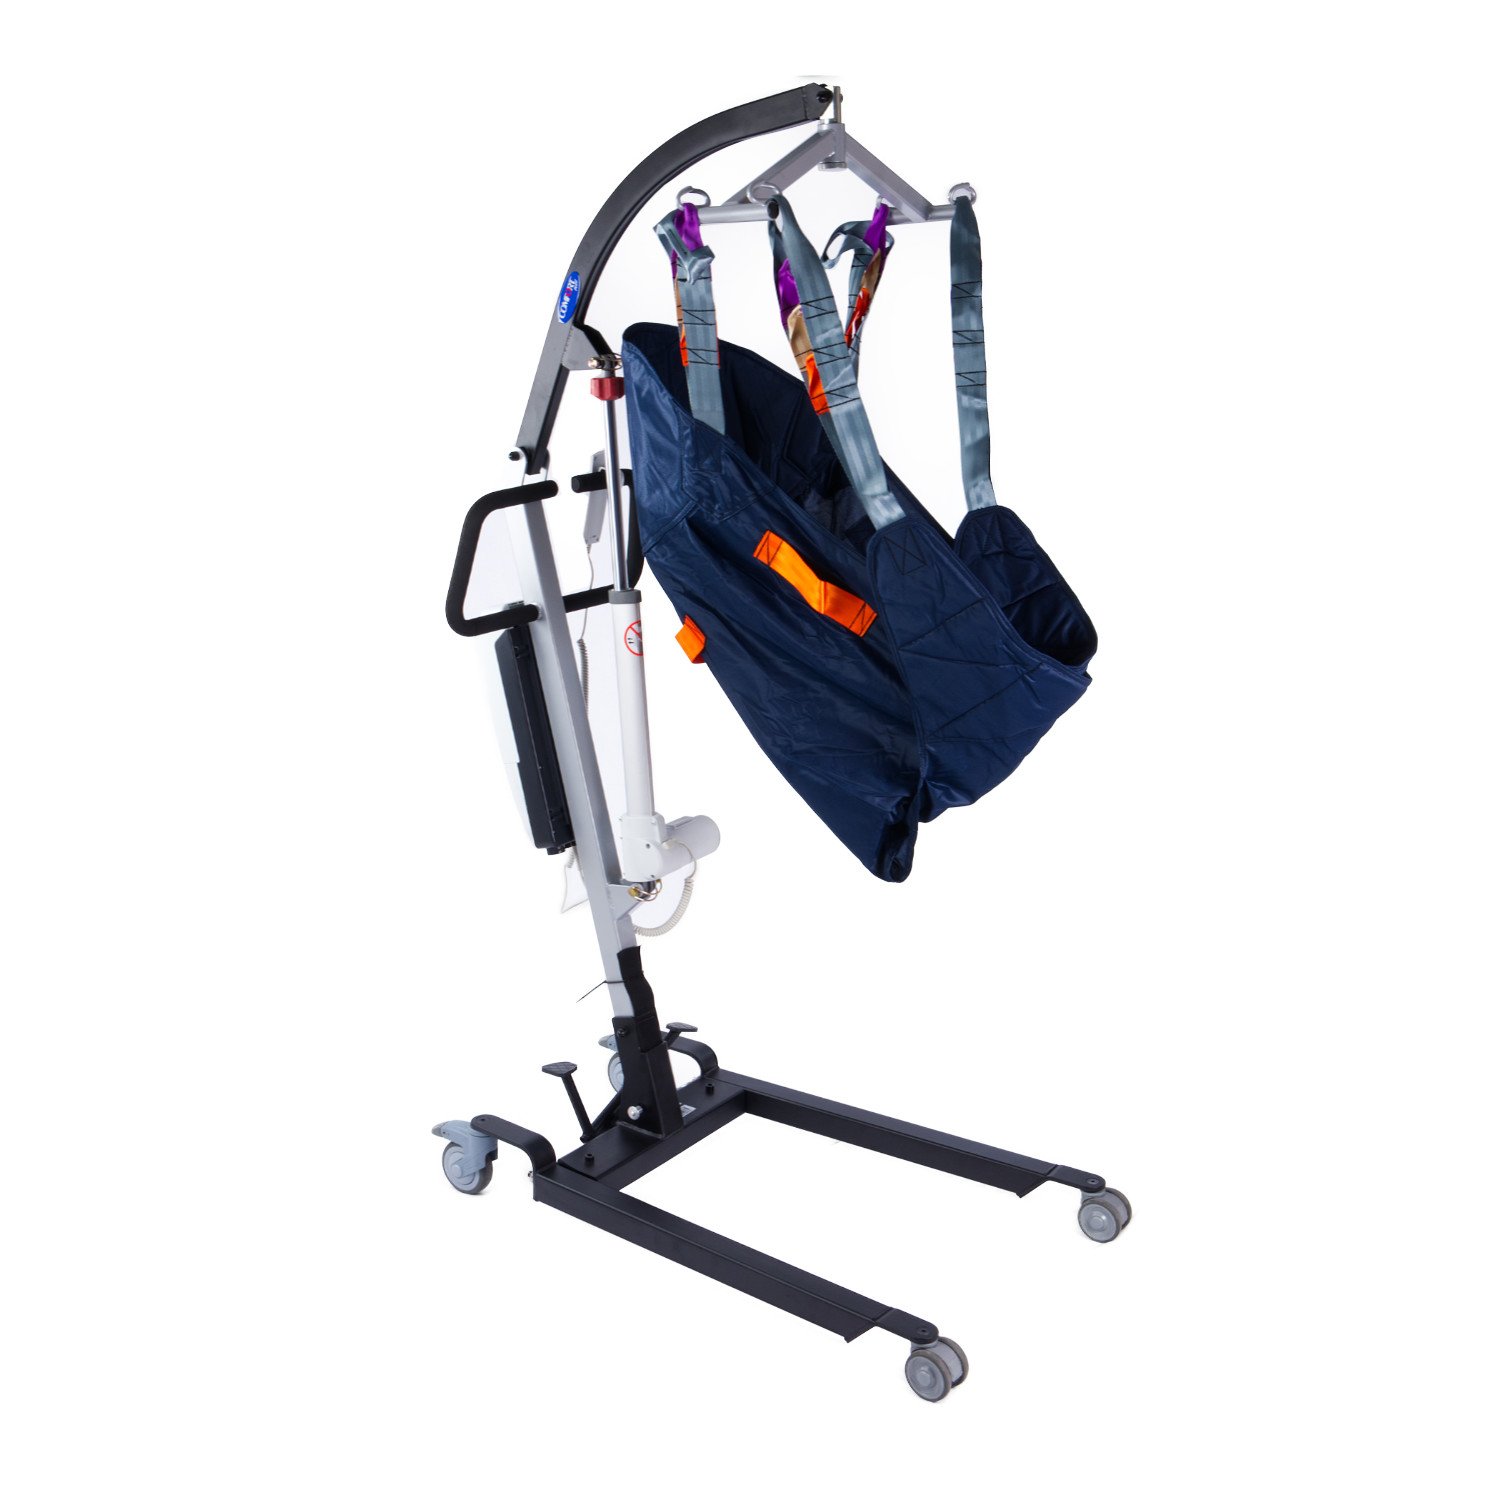 Comfort Plus DM-190 Compact Hasta Transfer Lifti